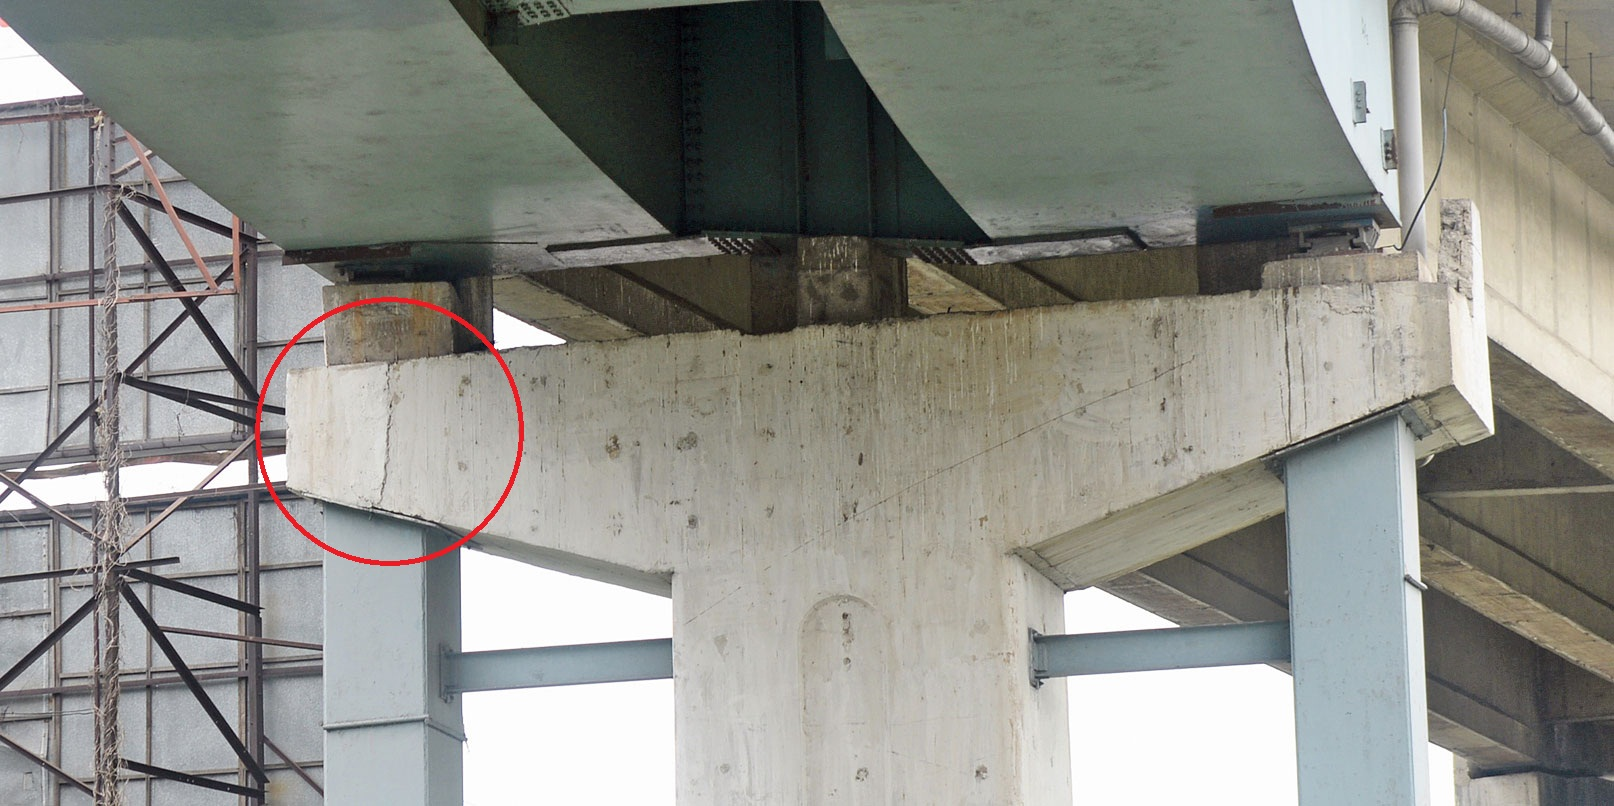 A crack on the flyover